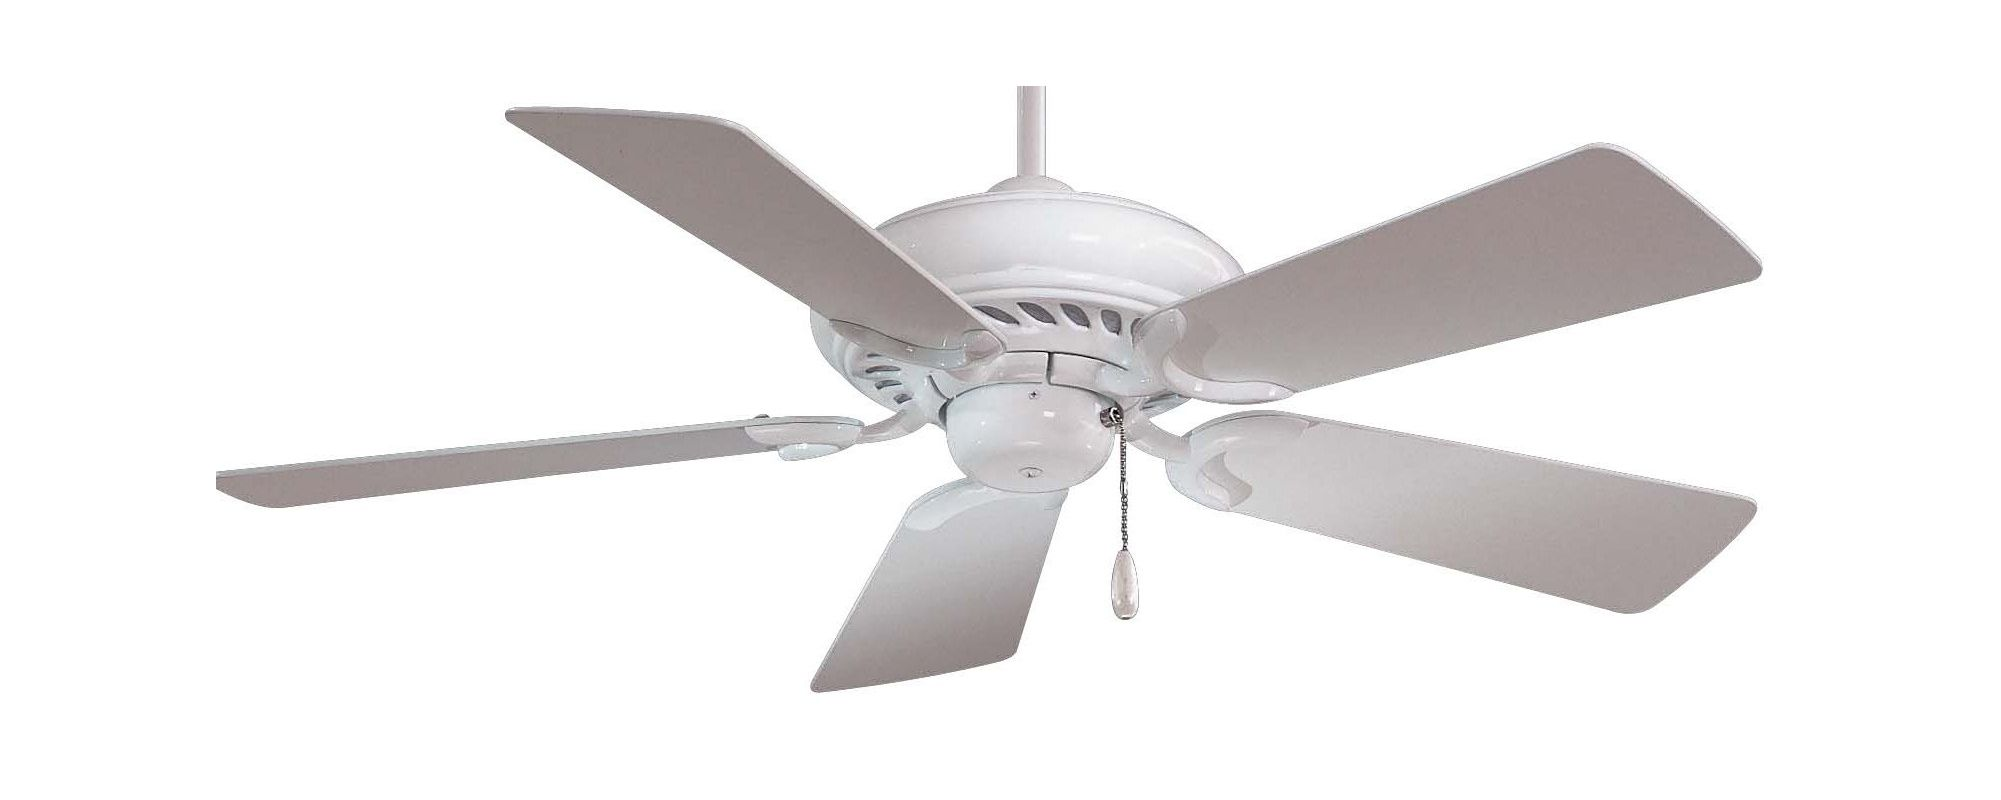 """MinkaAire Supra 44 Supra 44"""" 5 Blade Ceiling Fan - Blades Included"""